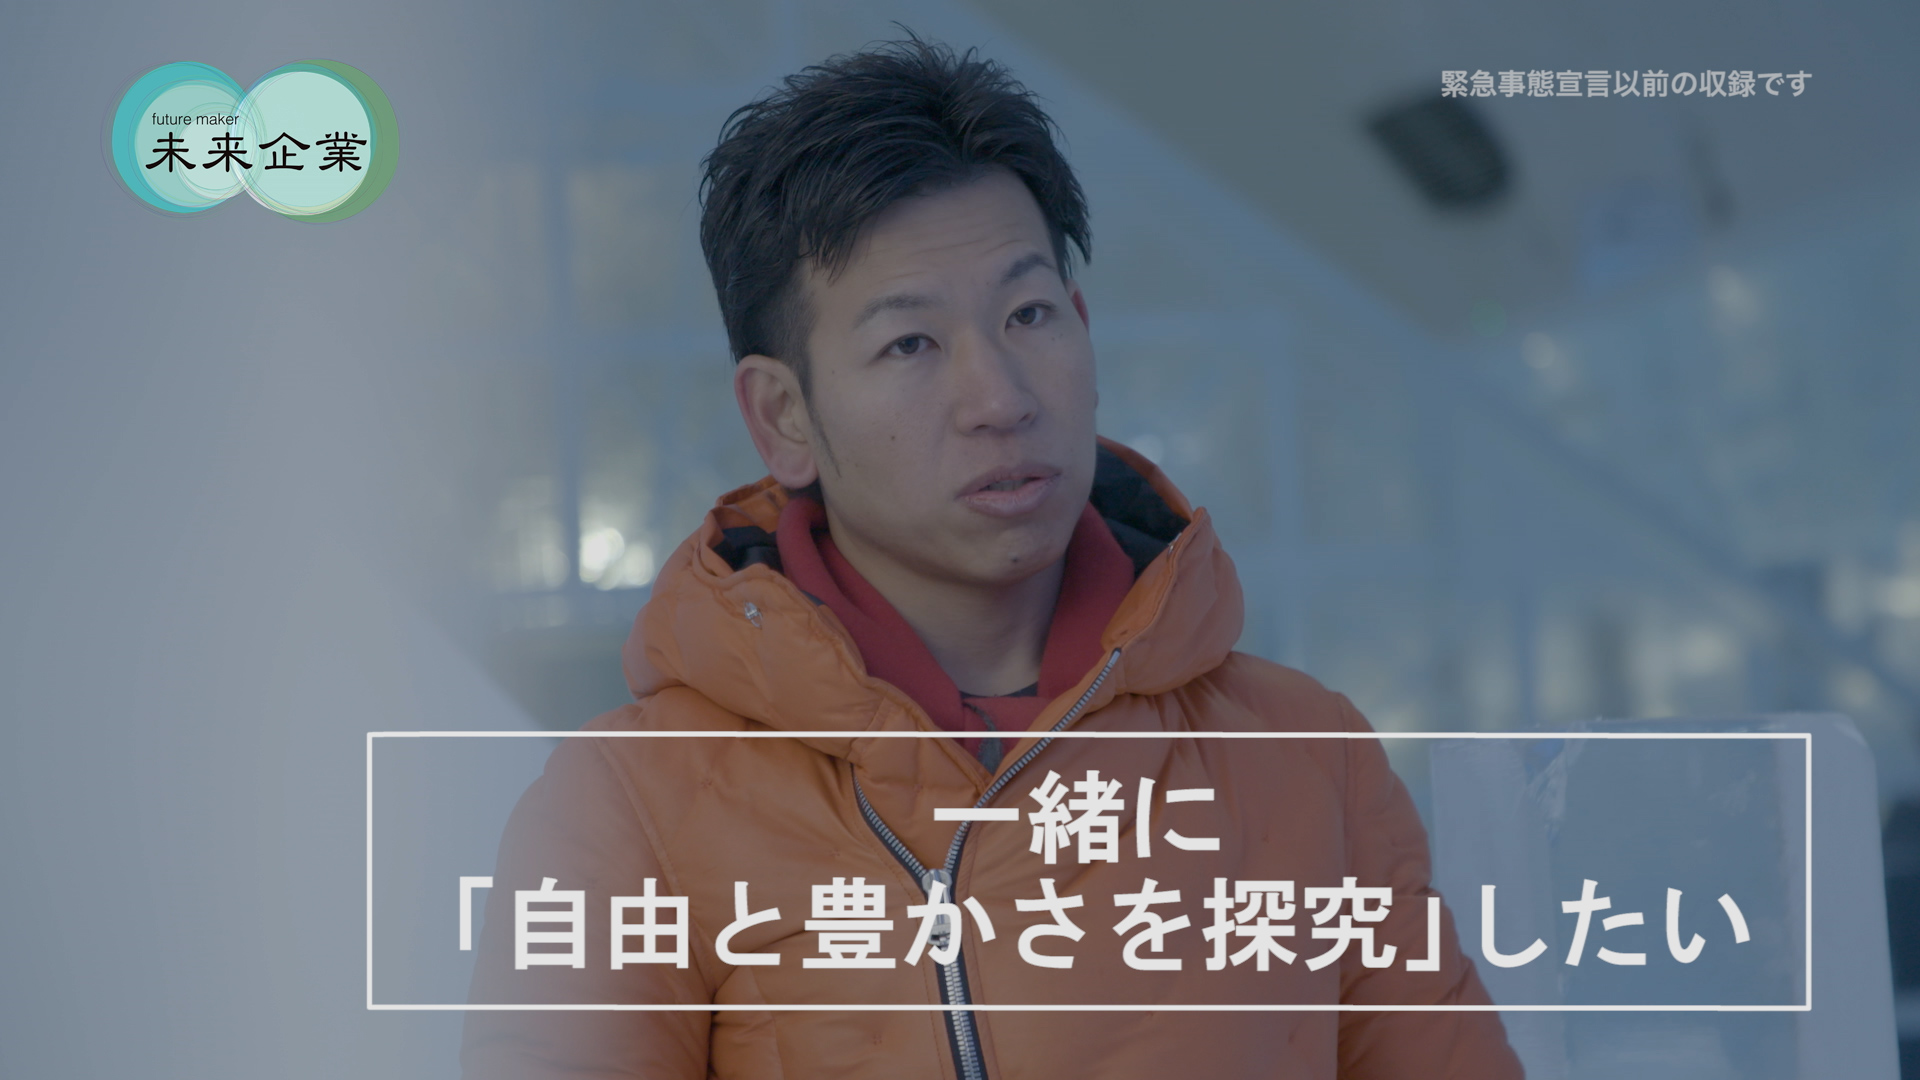 FRich Quest株式会社